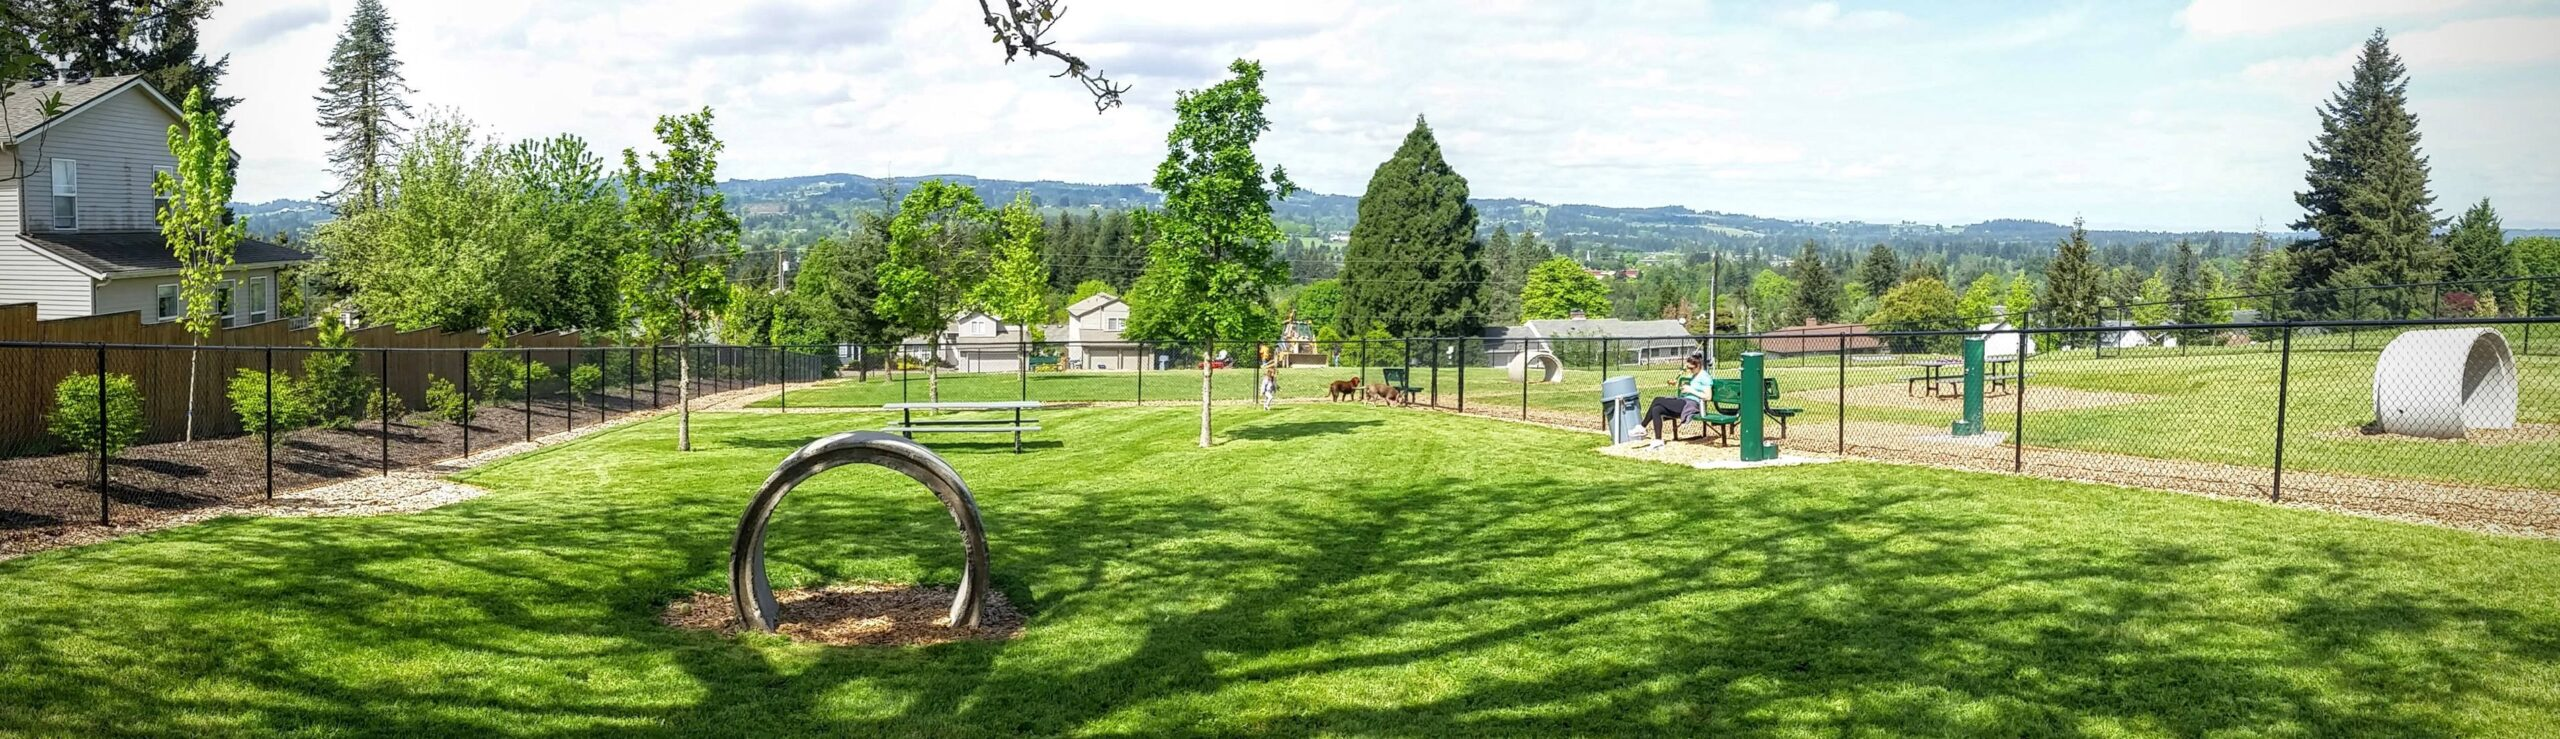 park in Sherwood, Oregon